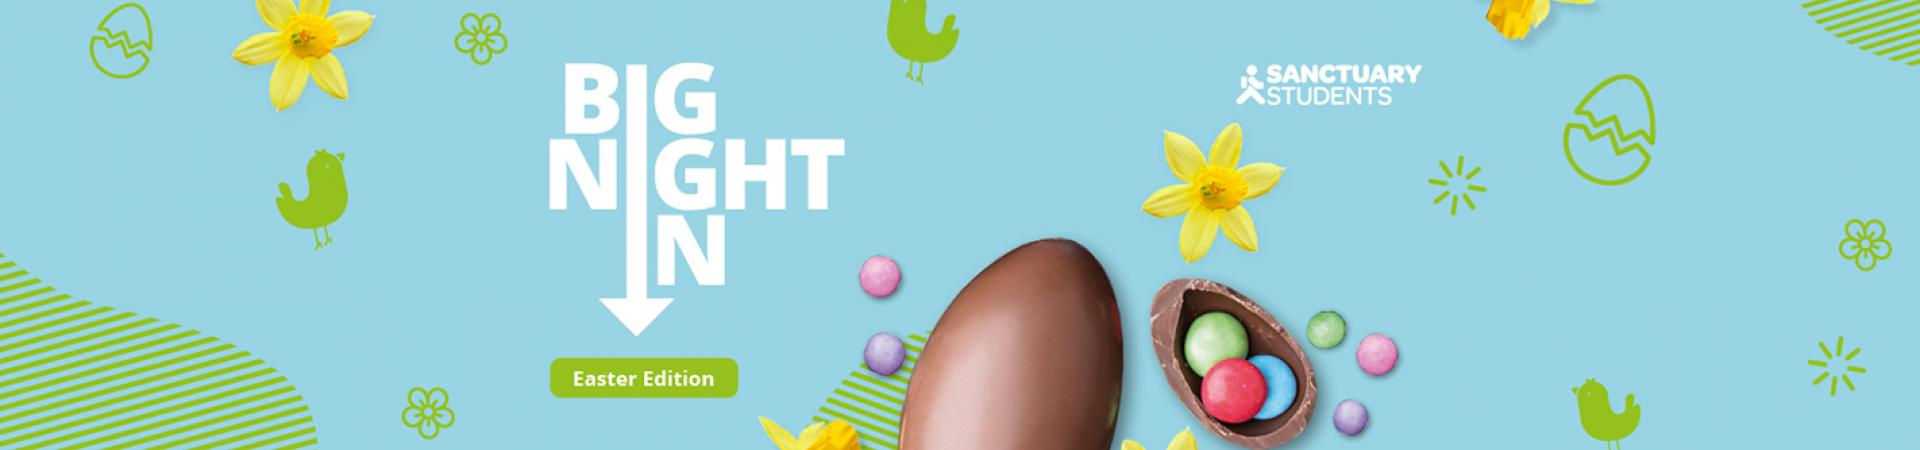 Big Night In Round 4 - Easter edition website teaser